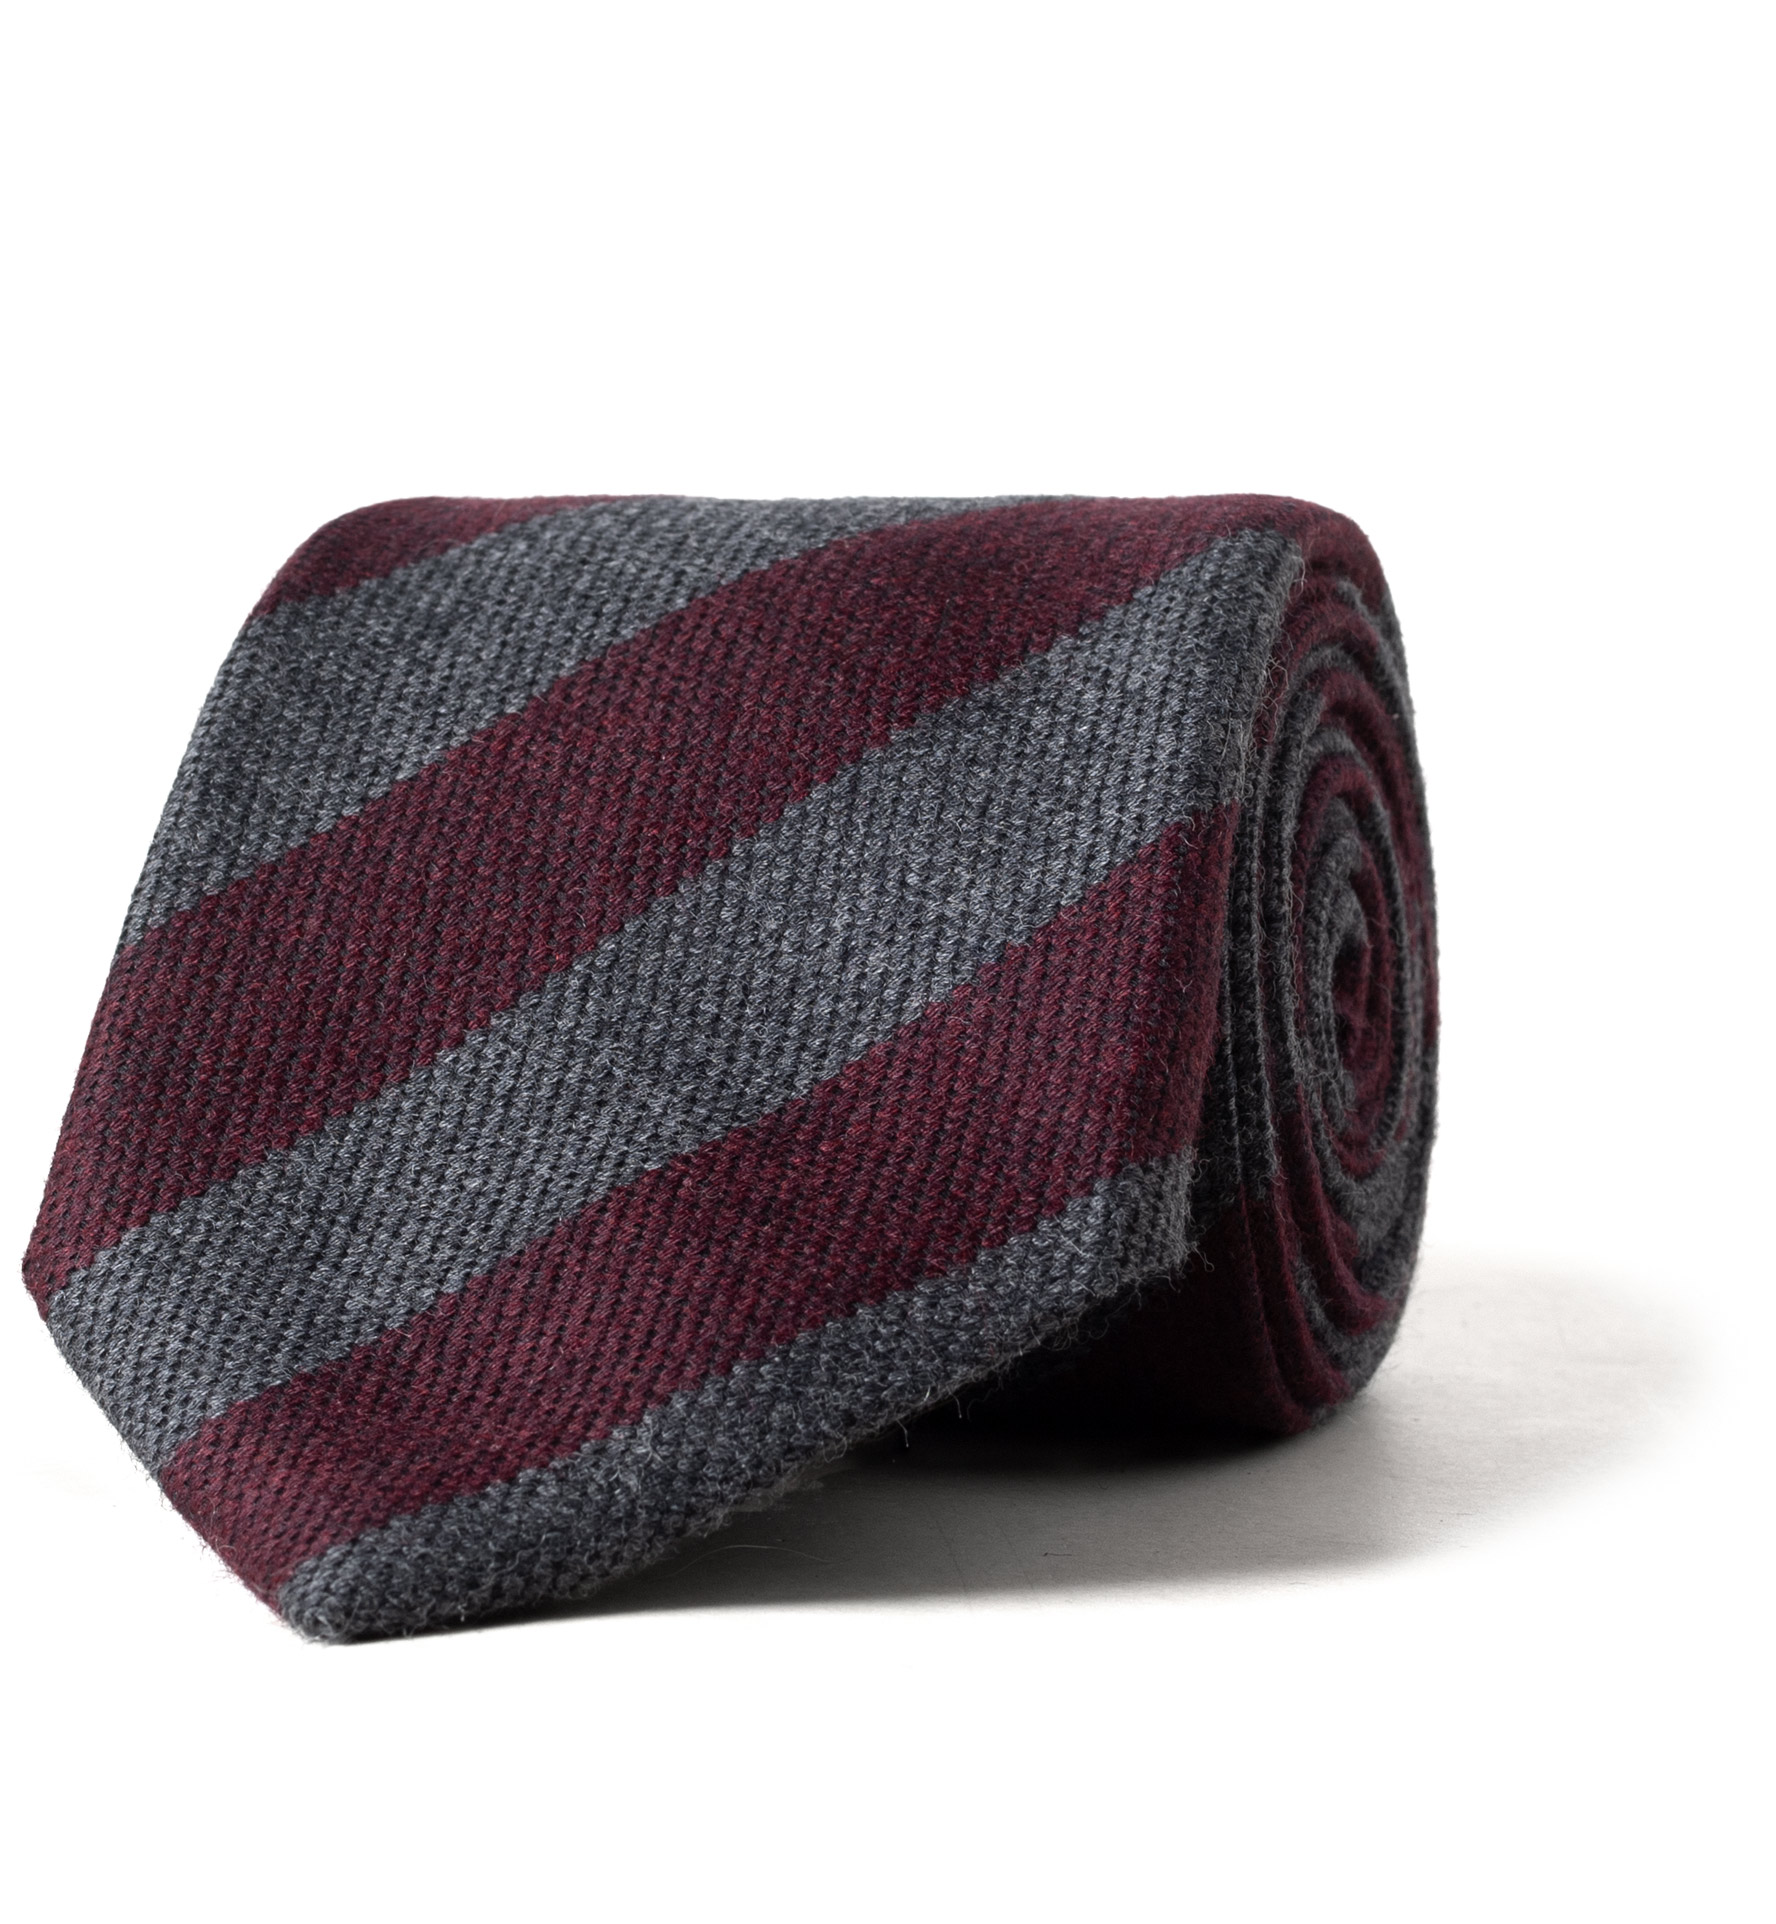 Zoom Image of Burgundy and Grey Wool and Silk Striped Tie